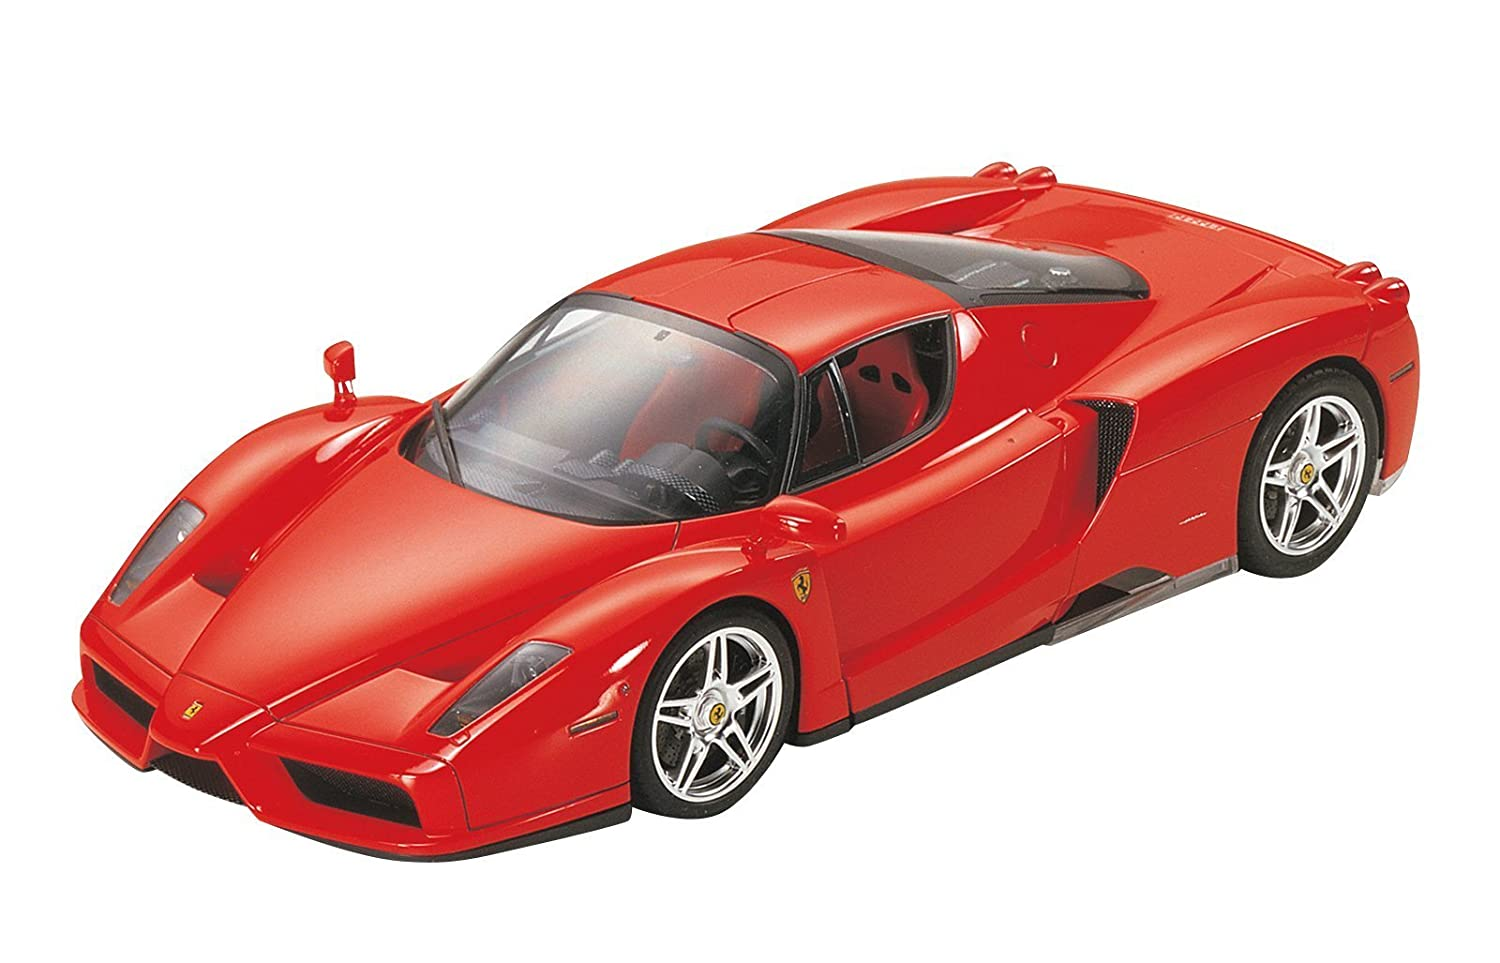 b85122e80a474 Tamiya Enzo Ferrari Red Version